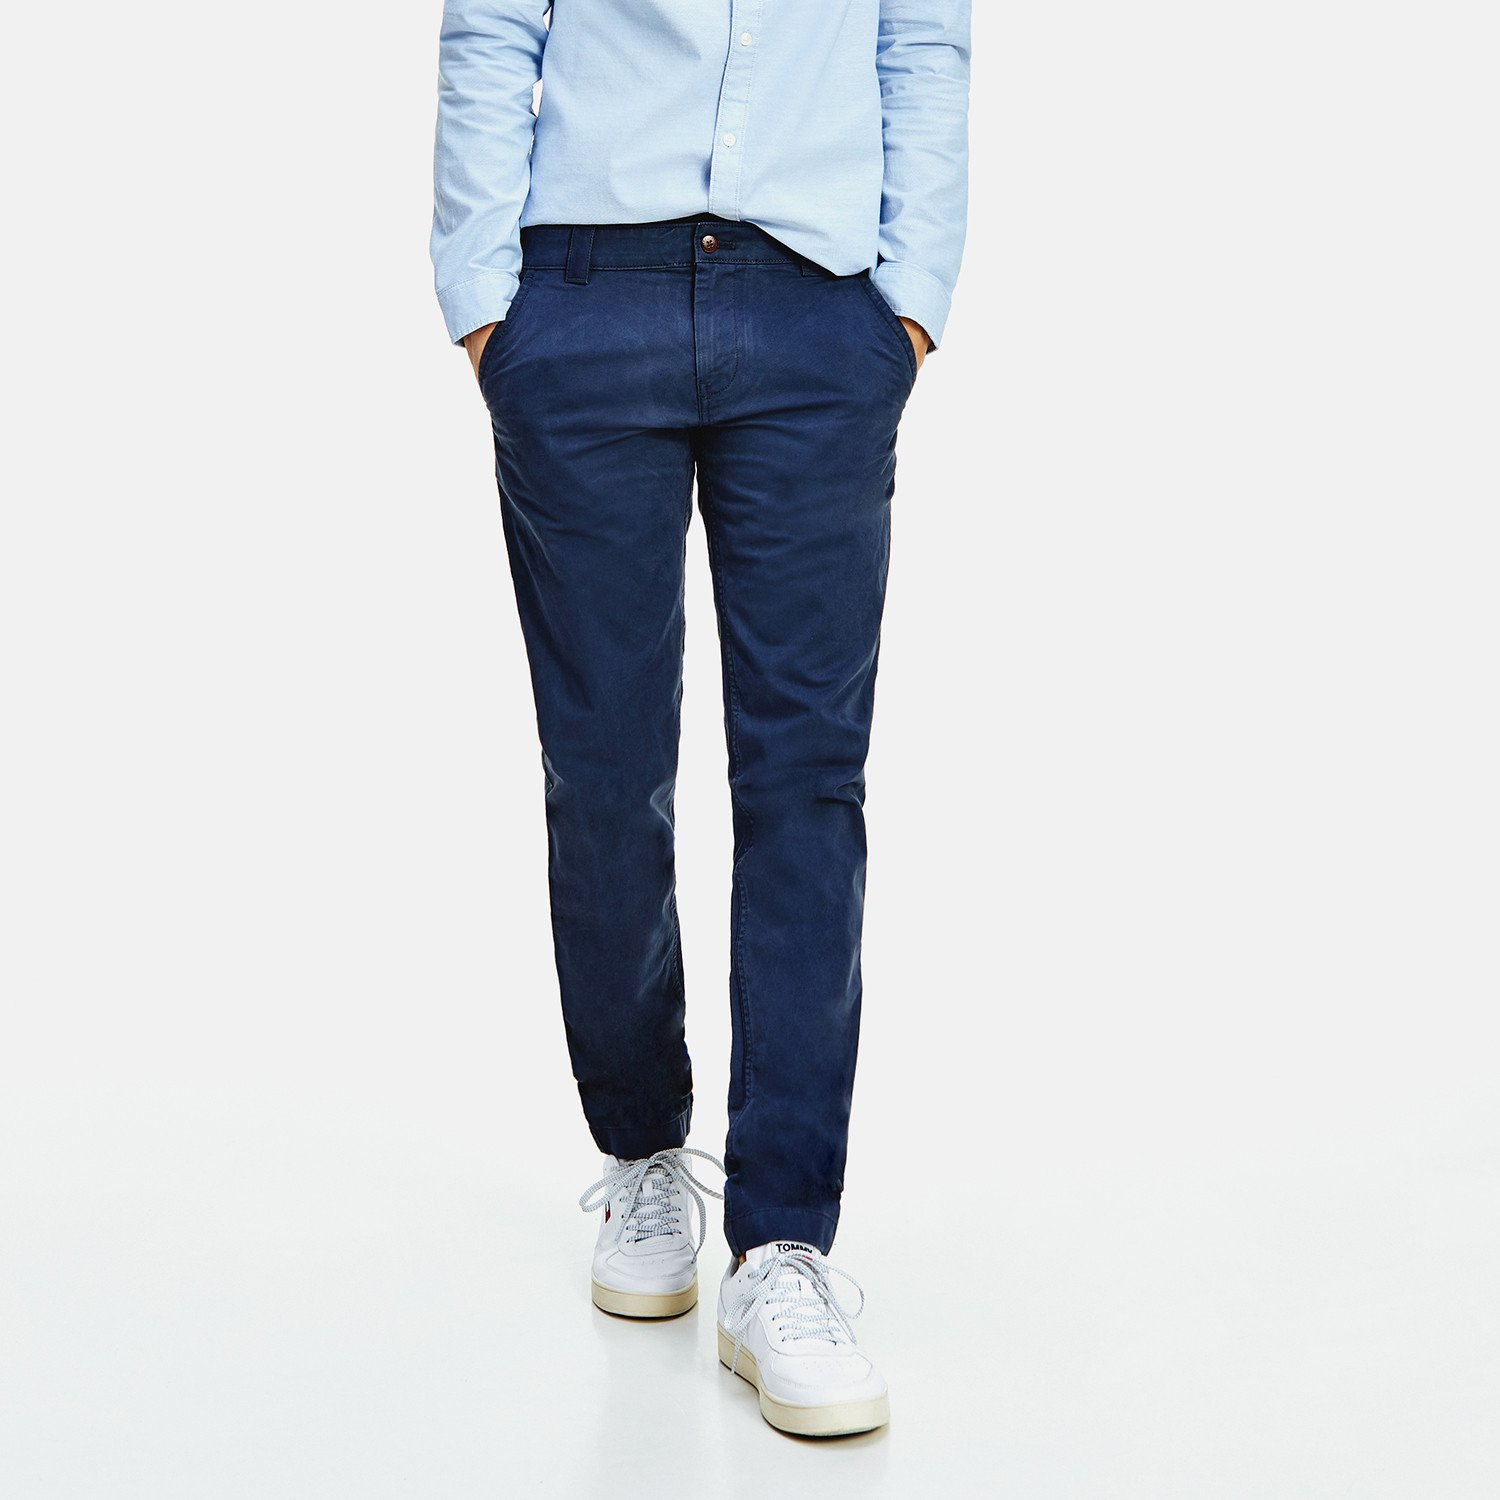 Tommy Jeans Scanton Ανδρικό Chino Παντελόνι (Μήκος 32L) (9000074766_45076)